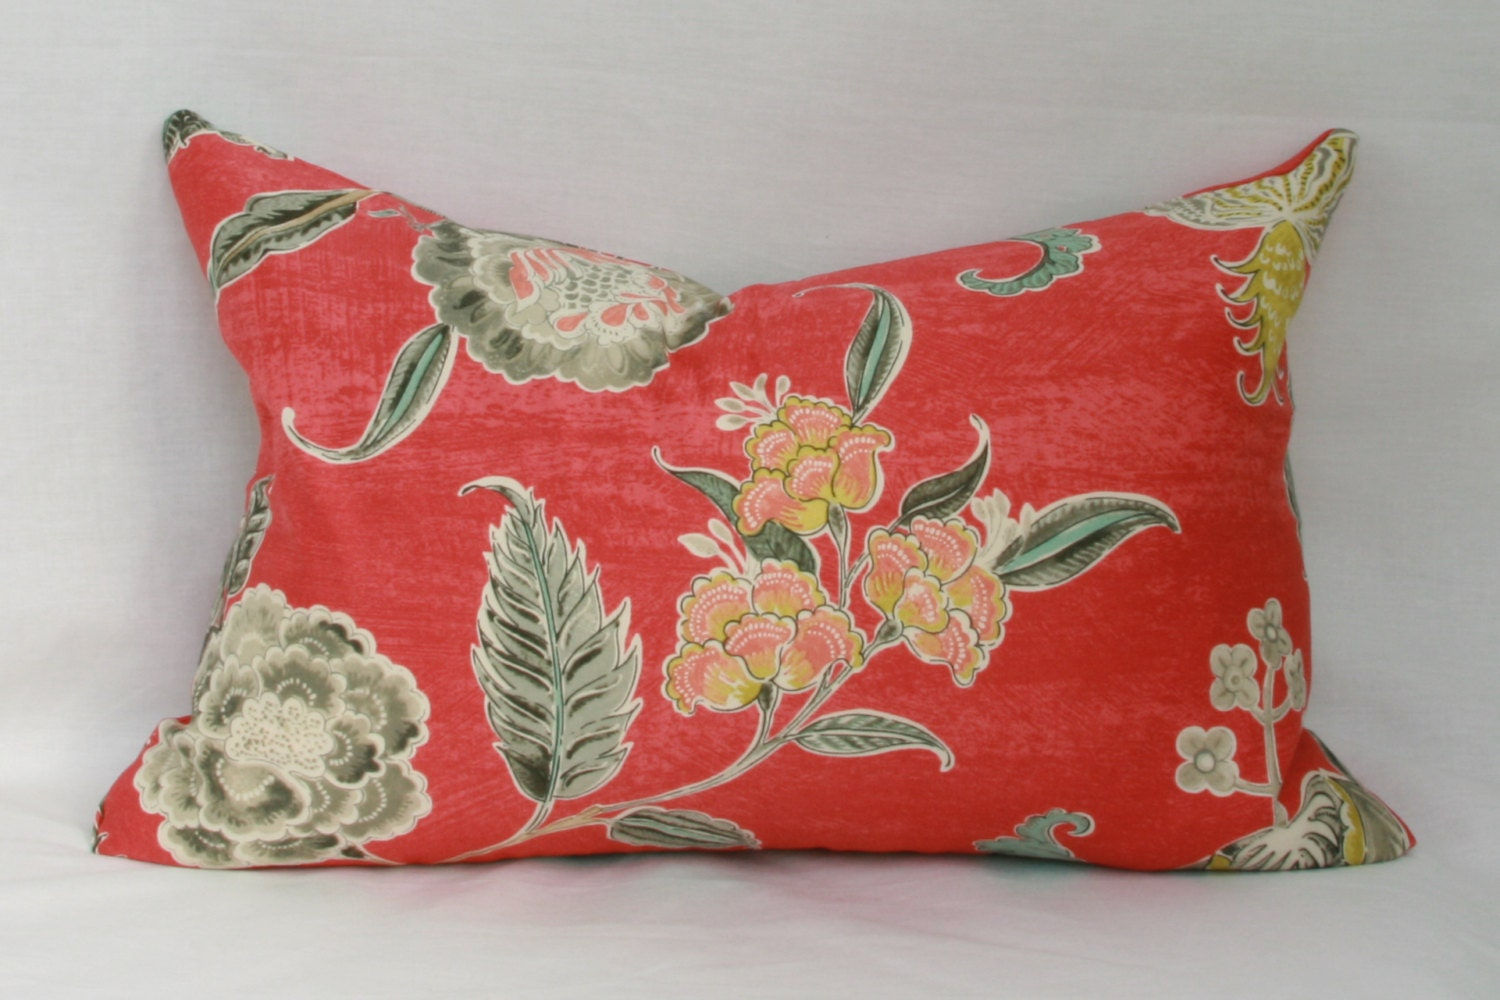 Red Floral Decorative Throw Pillow Cover. Waverly Asian Myth